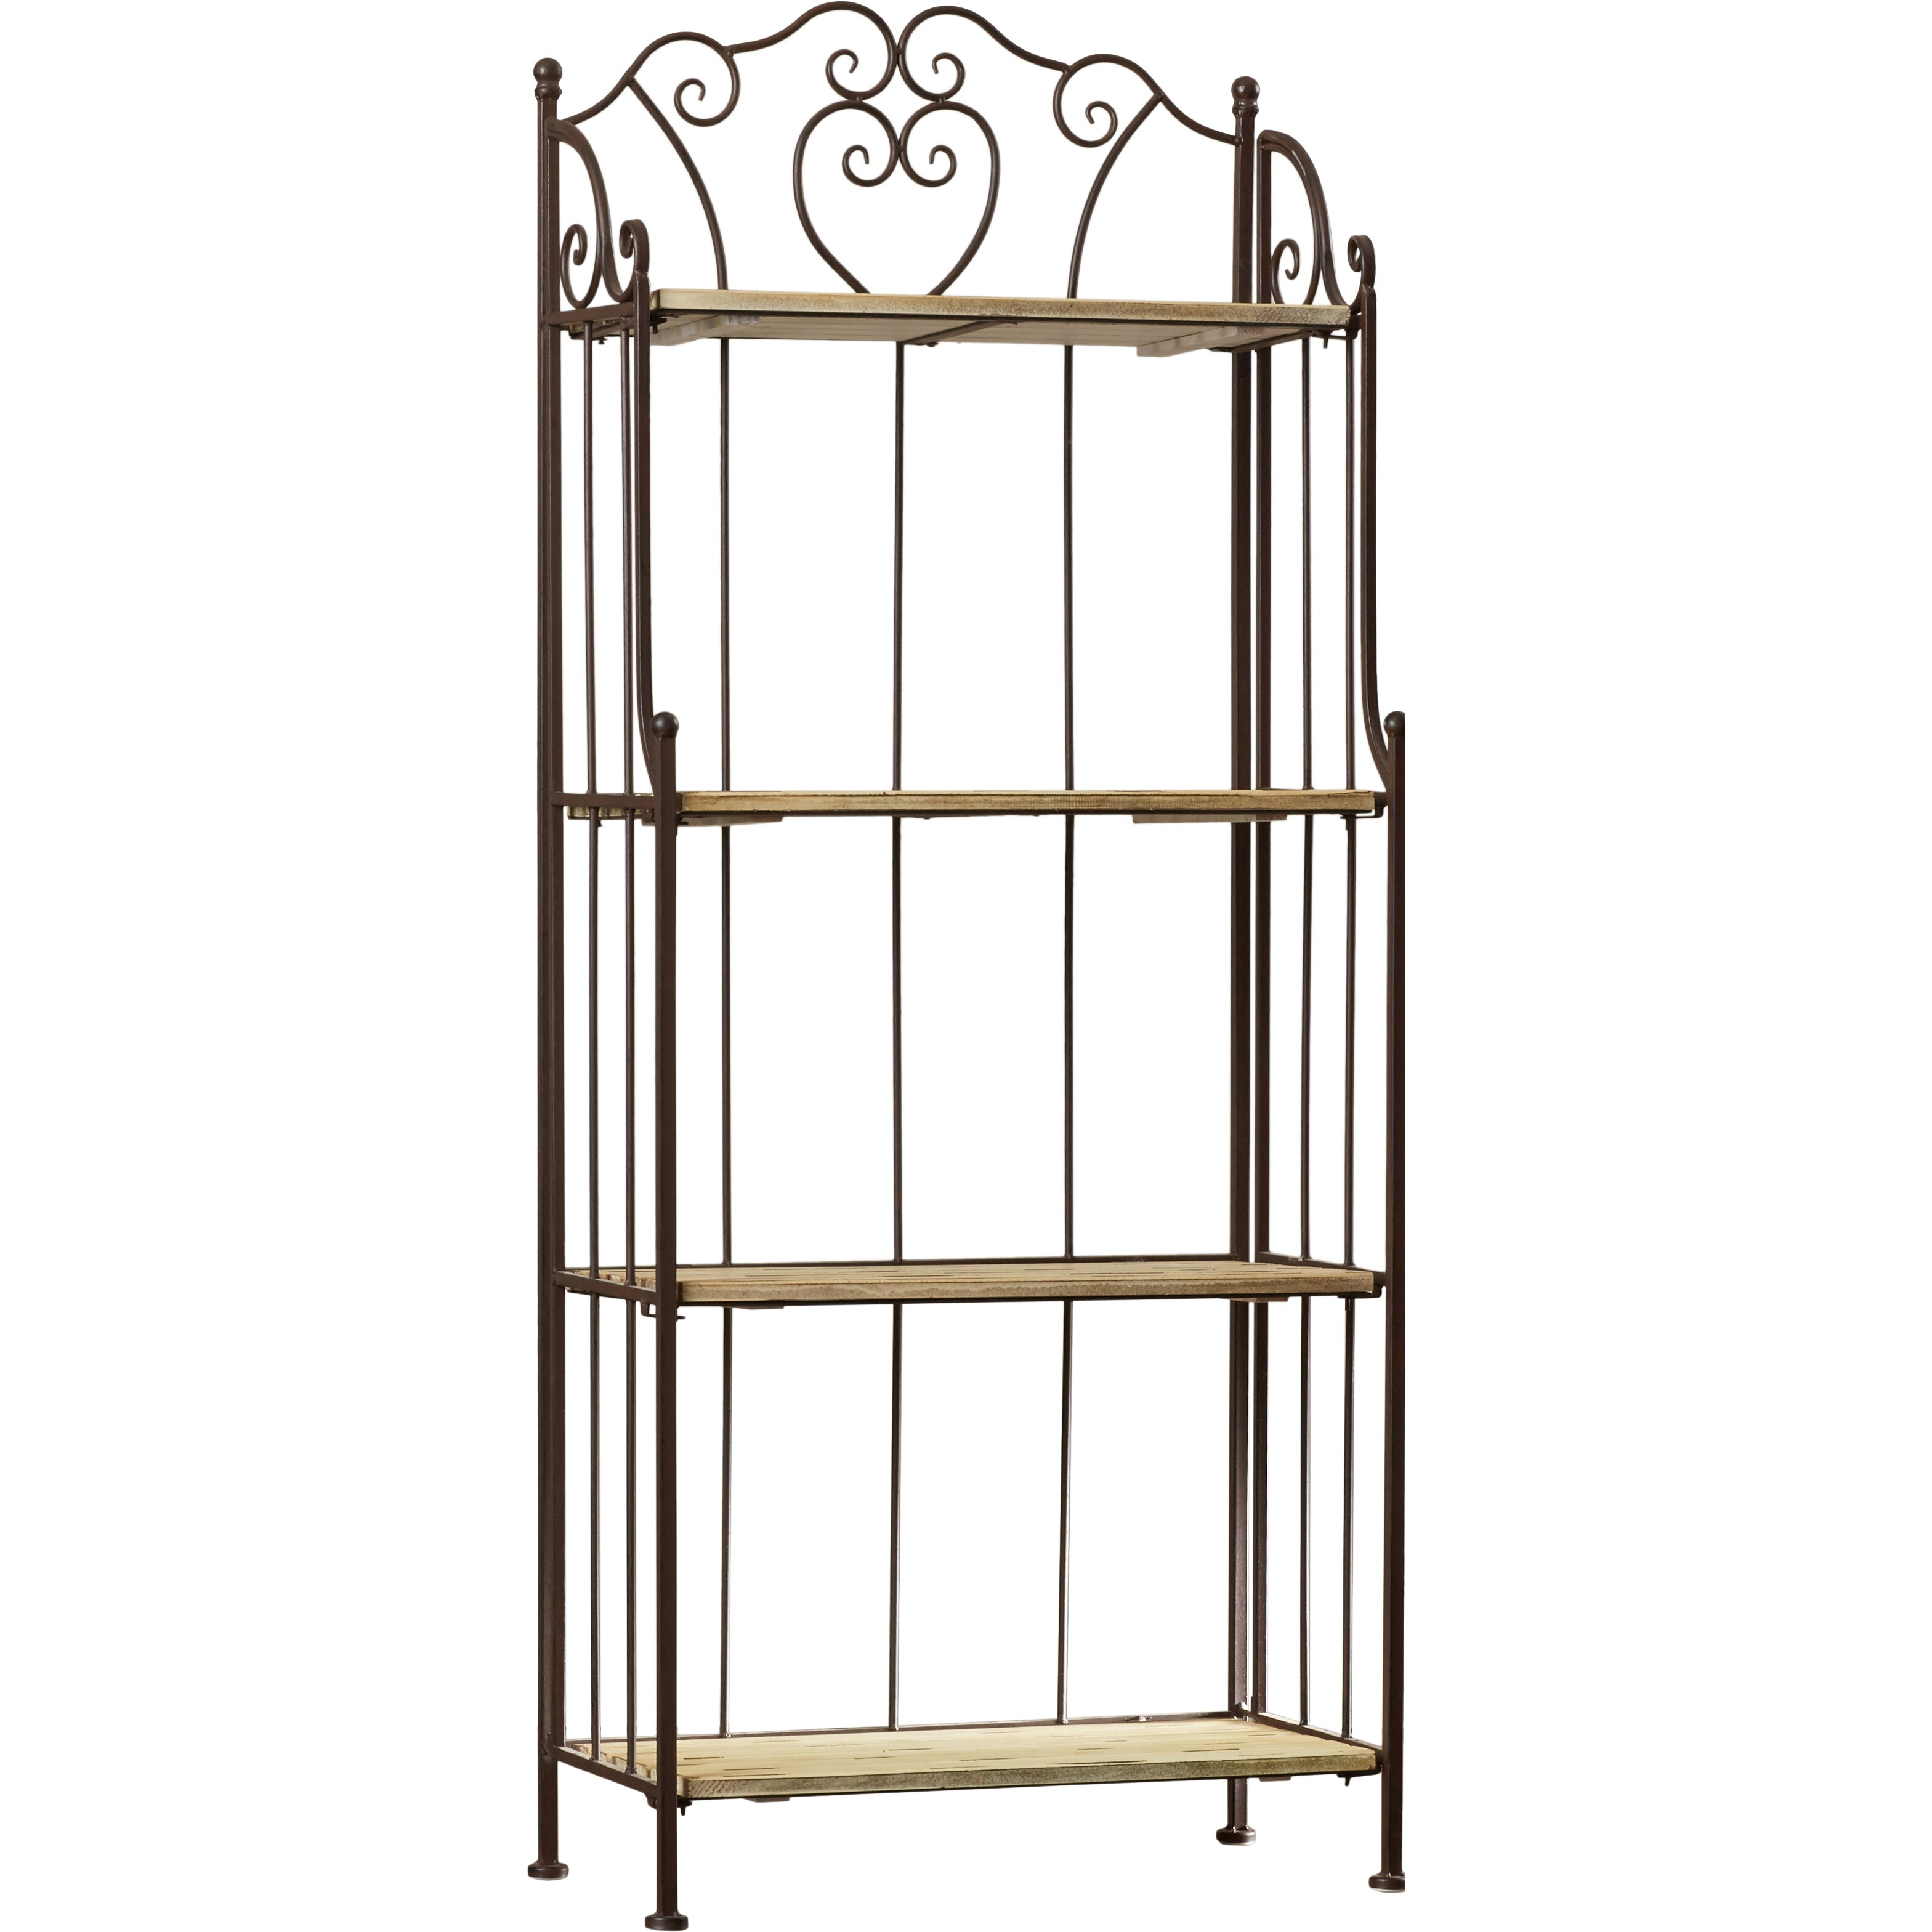 California King Size Bedroom Sets Rosalind Wheeler Elford Bakers Rack Plant Stand Amp Reviews